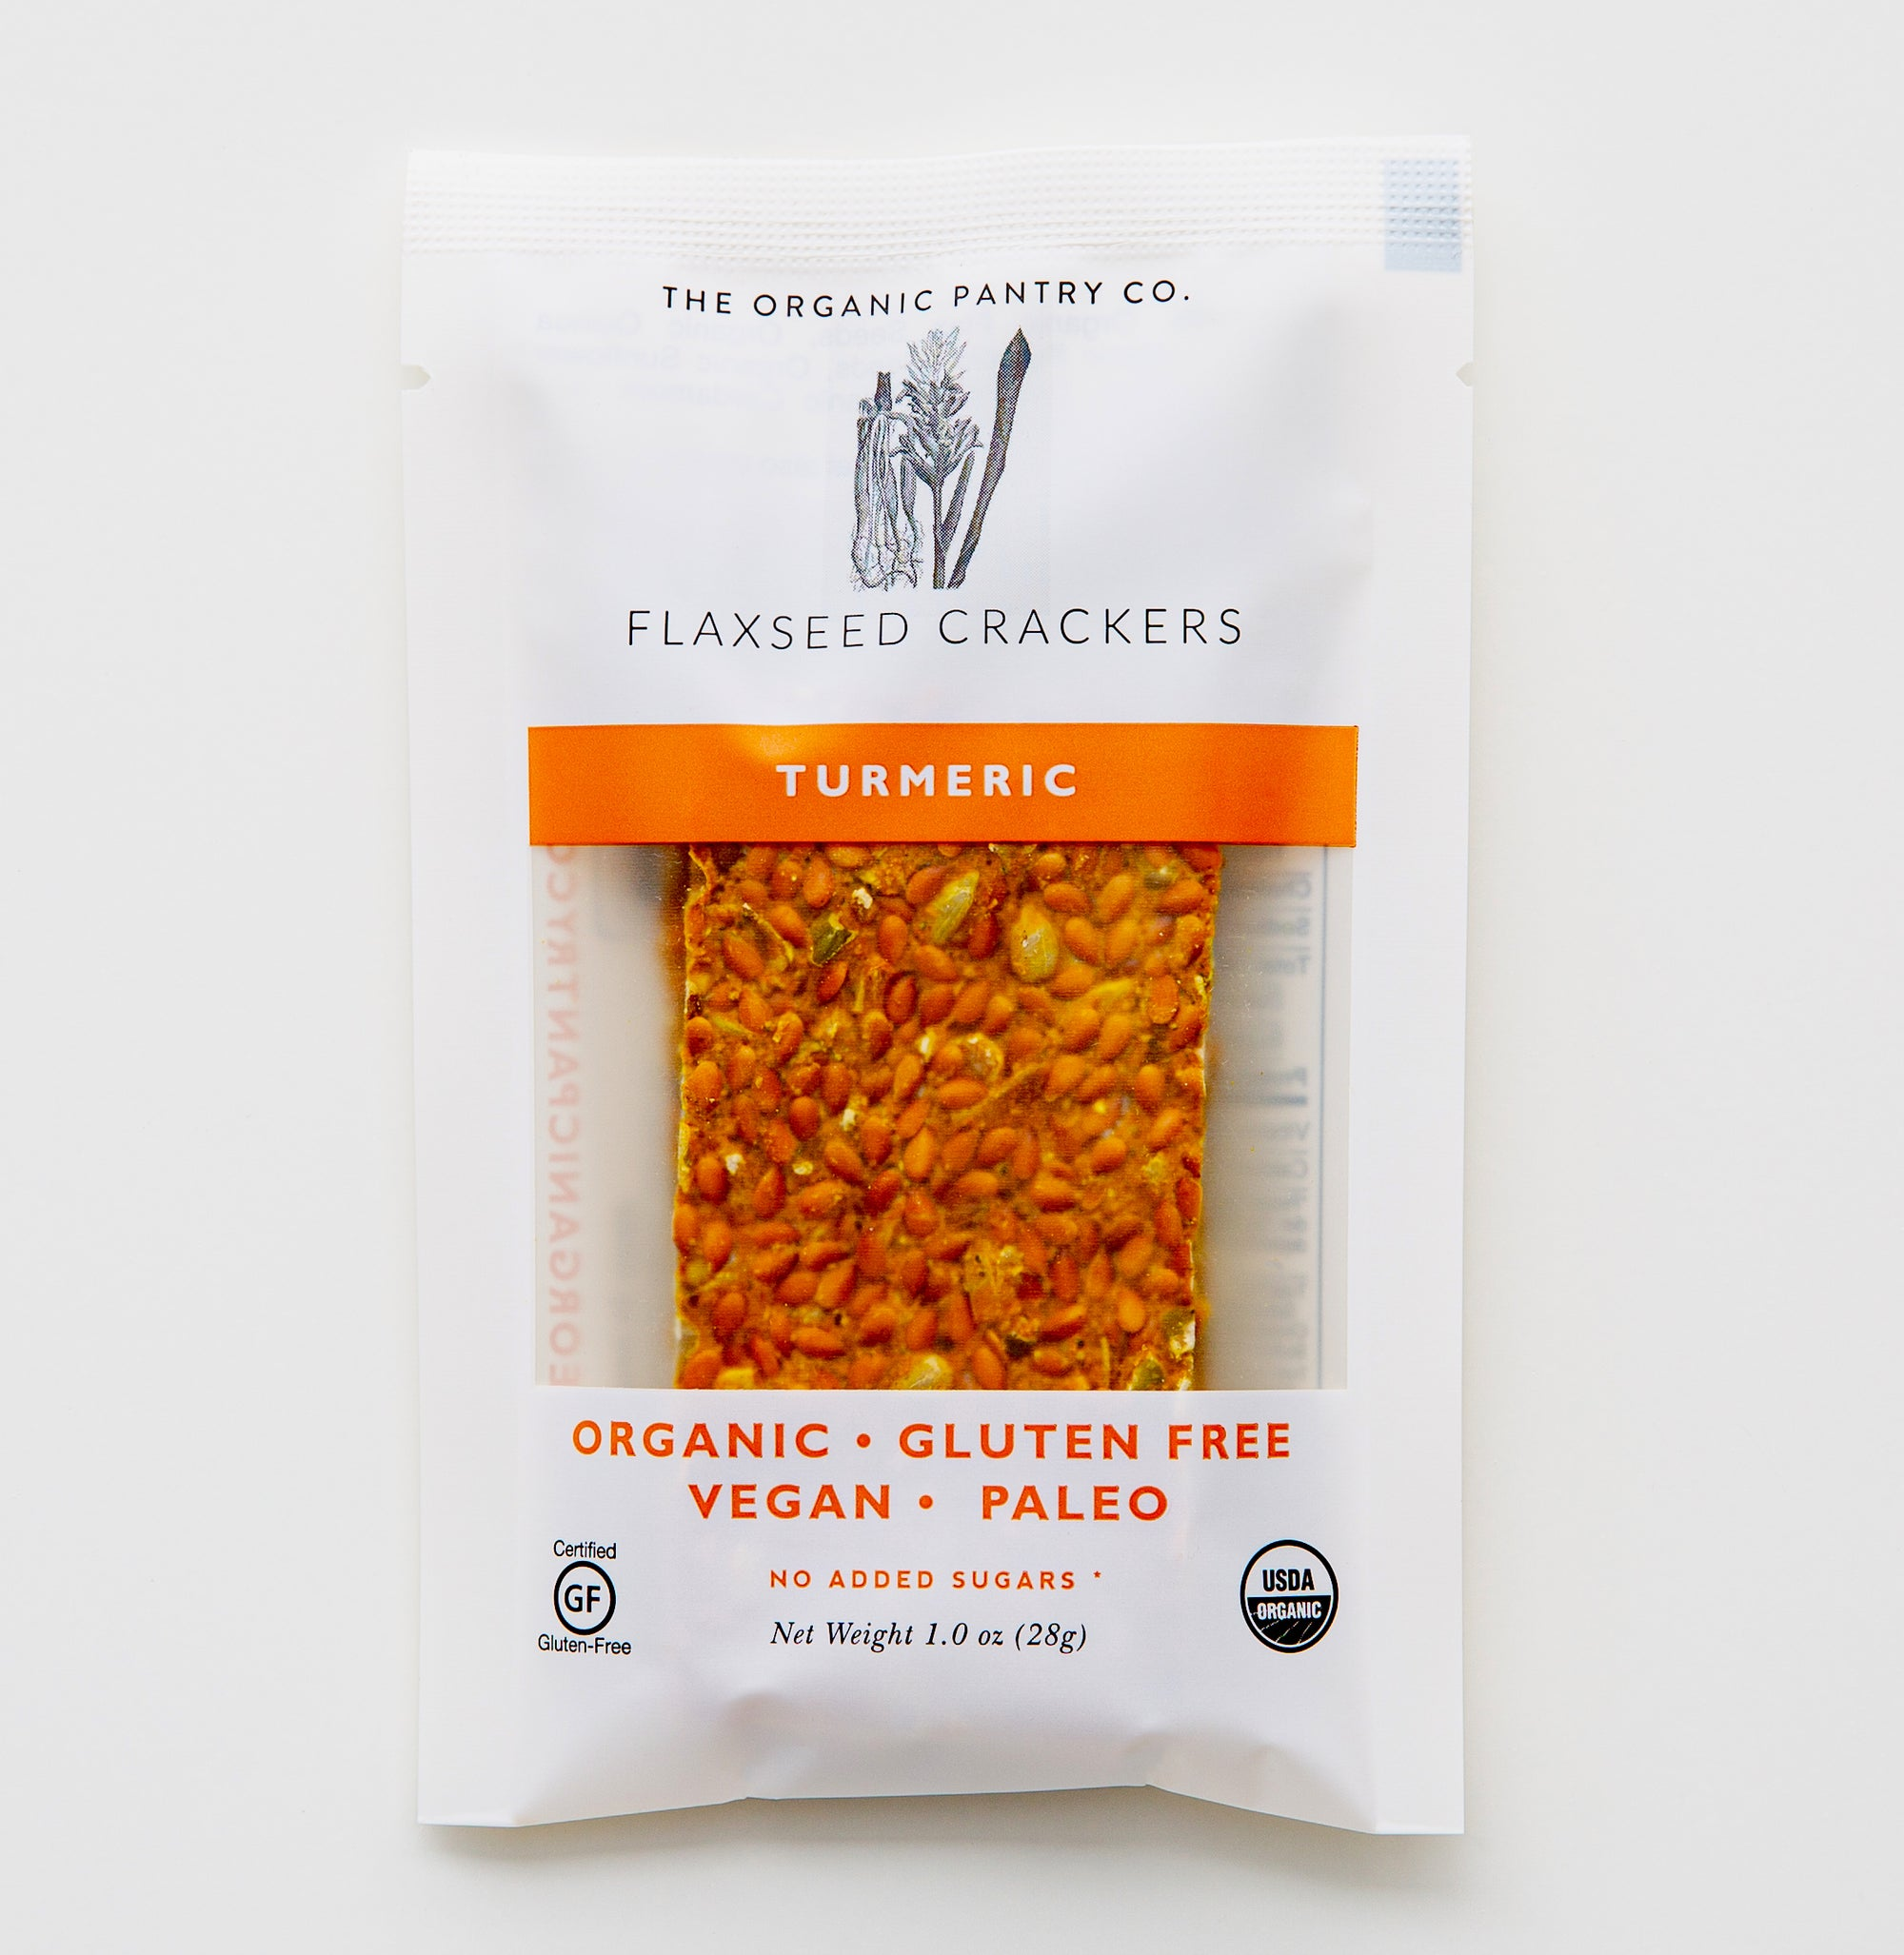 Turmeric Flaxseed Cracker 1.0 oz Single Serve Size (24 count box)